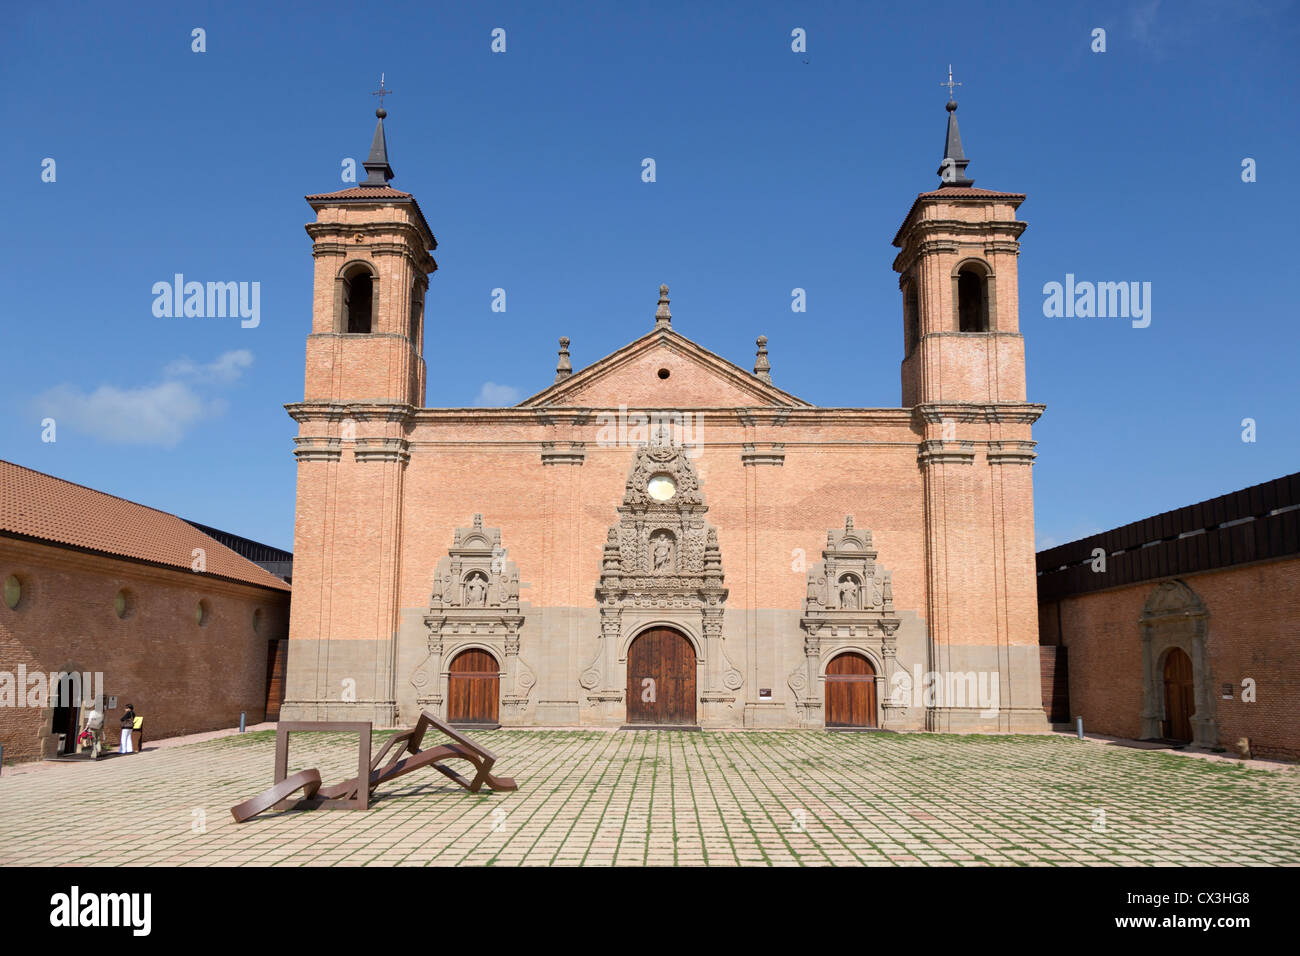 San Juan de la Pena; new monastry; near Jaca; Spain - Stock Image